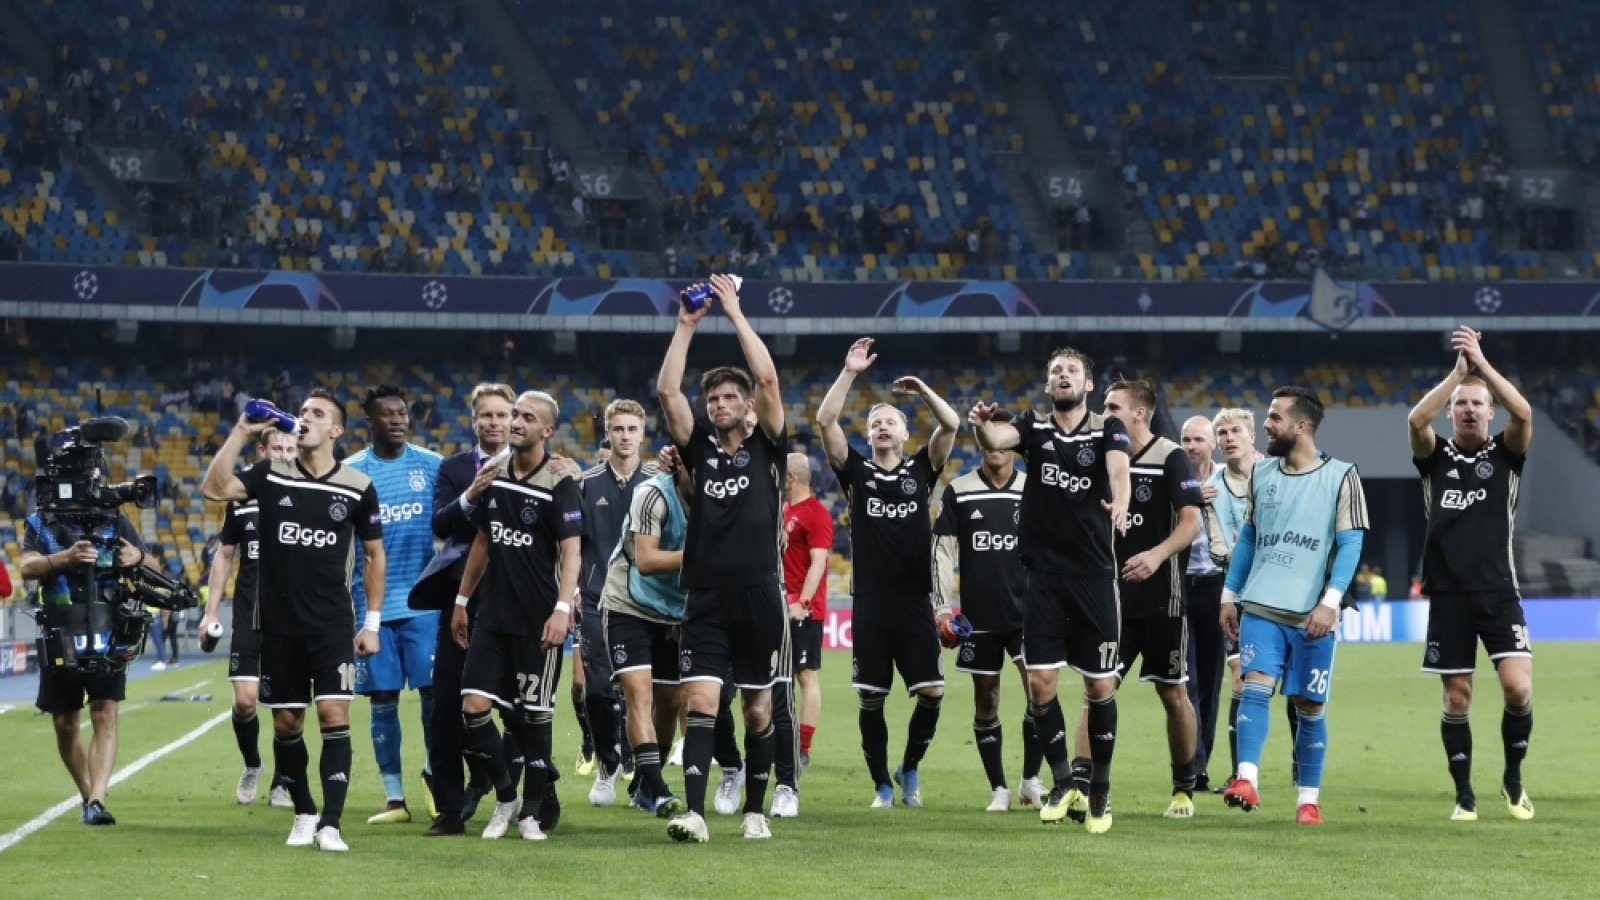 Loting Champions League 2019 Image: Pittige Loting Ajax In Champions League